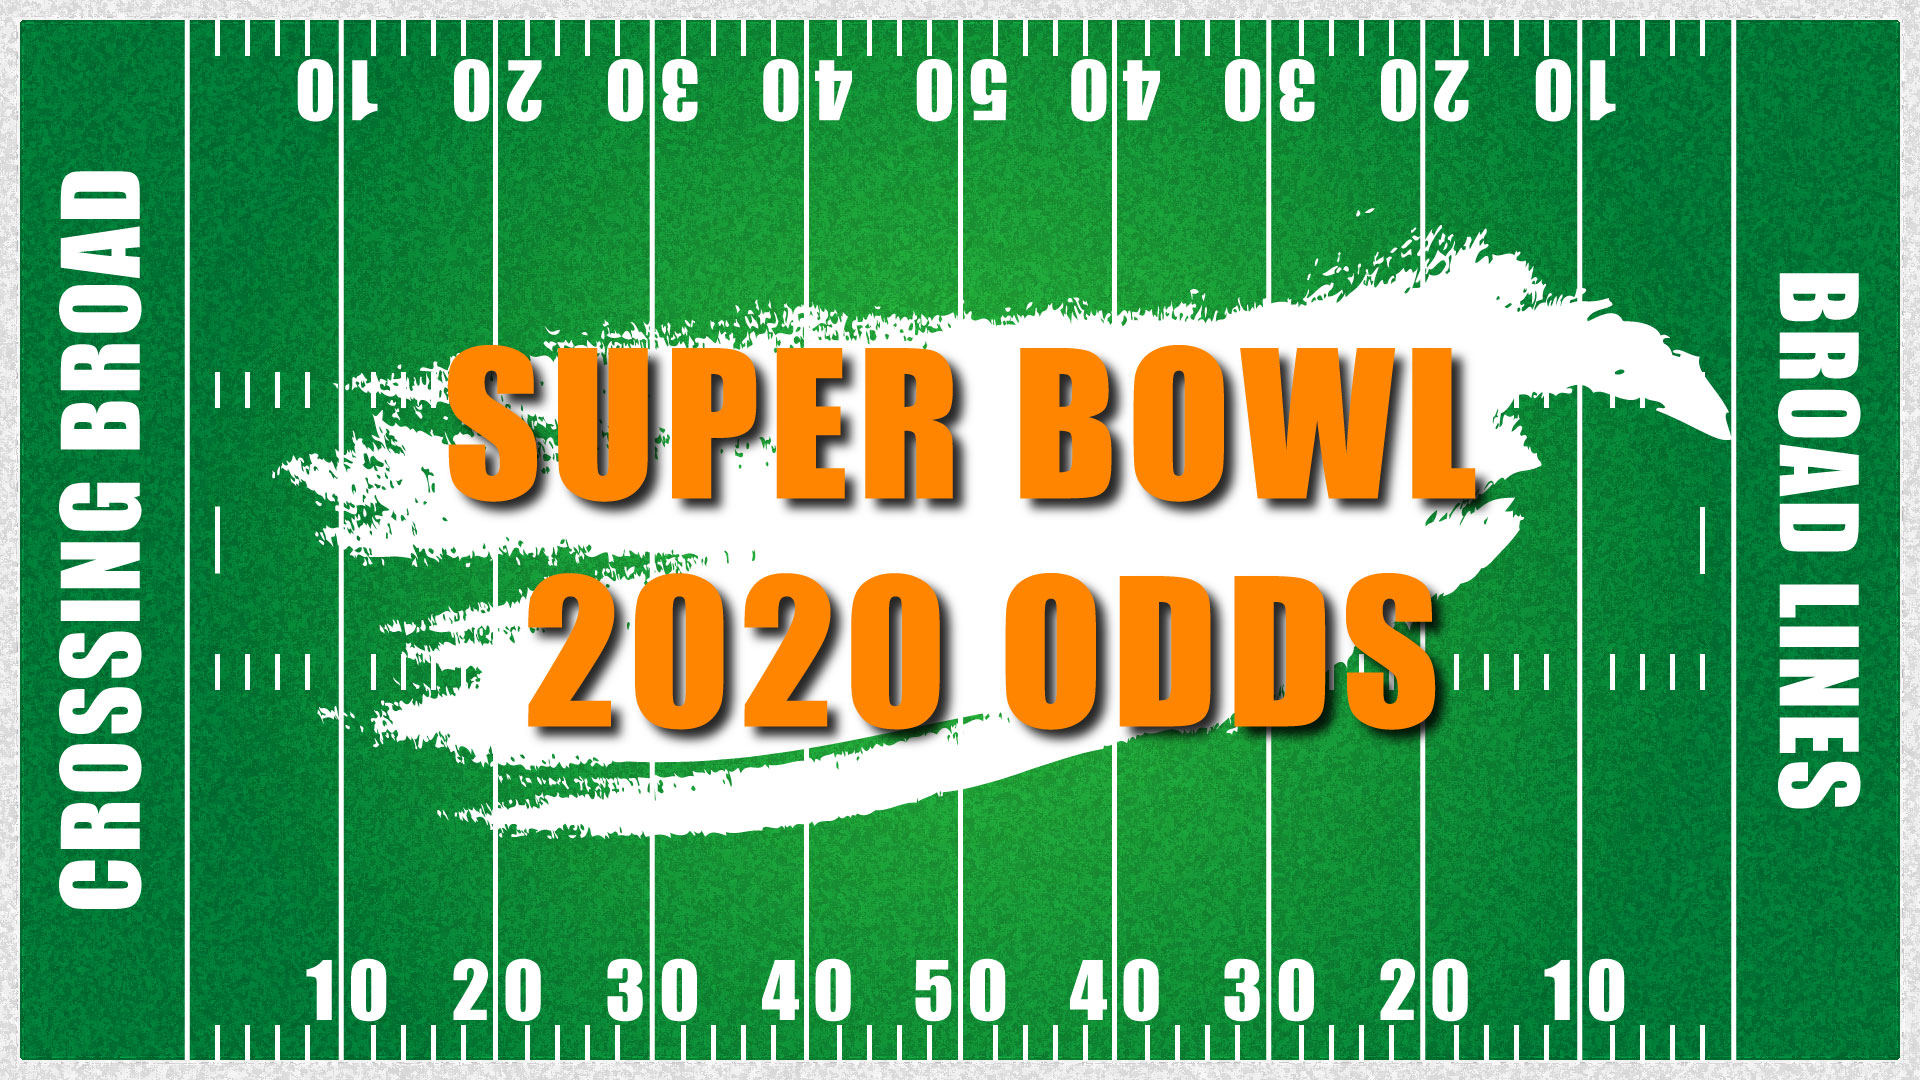 Super Bowl 2020 Clip Art 1920x1080